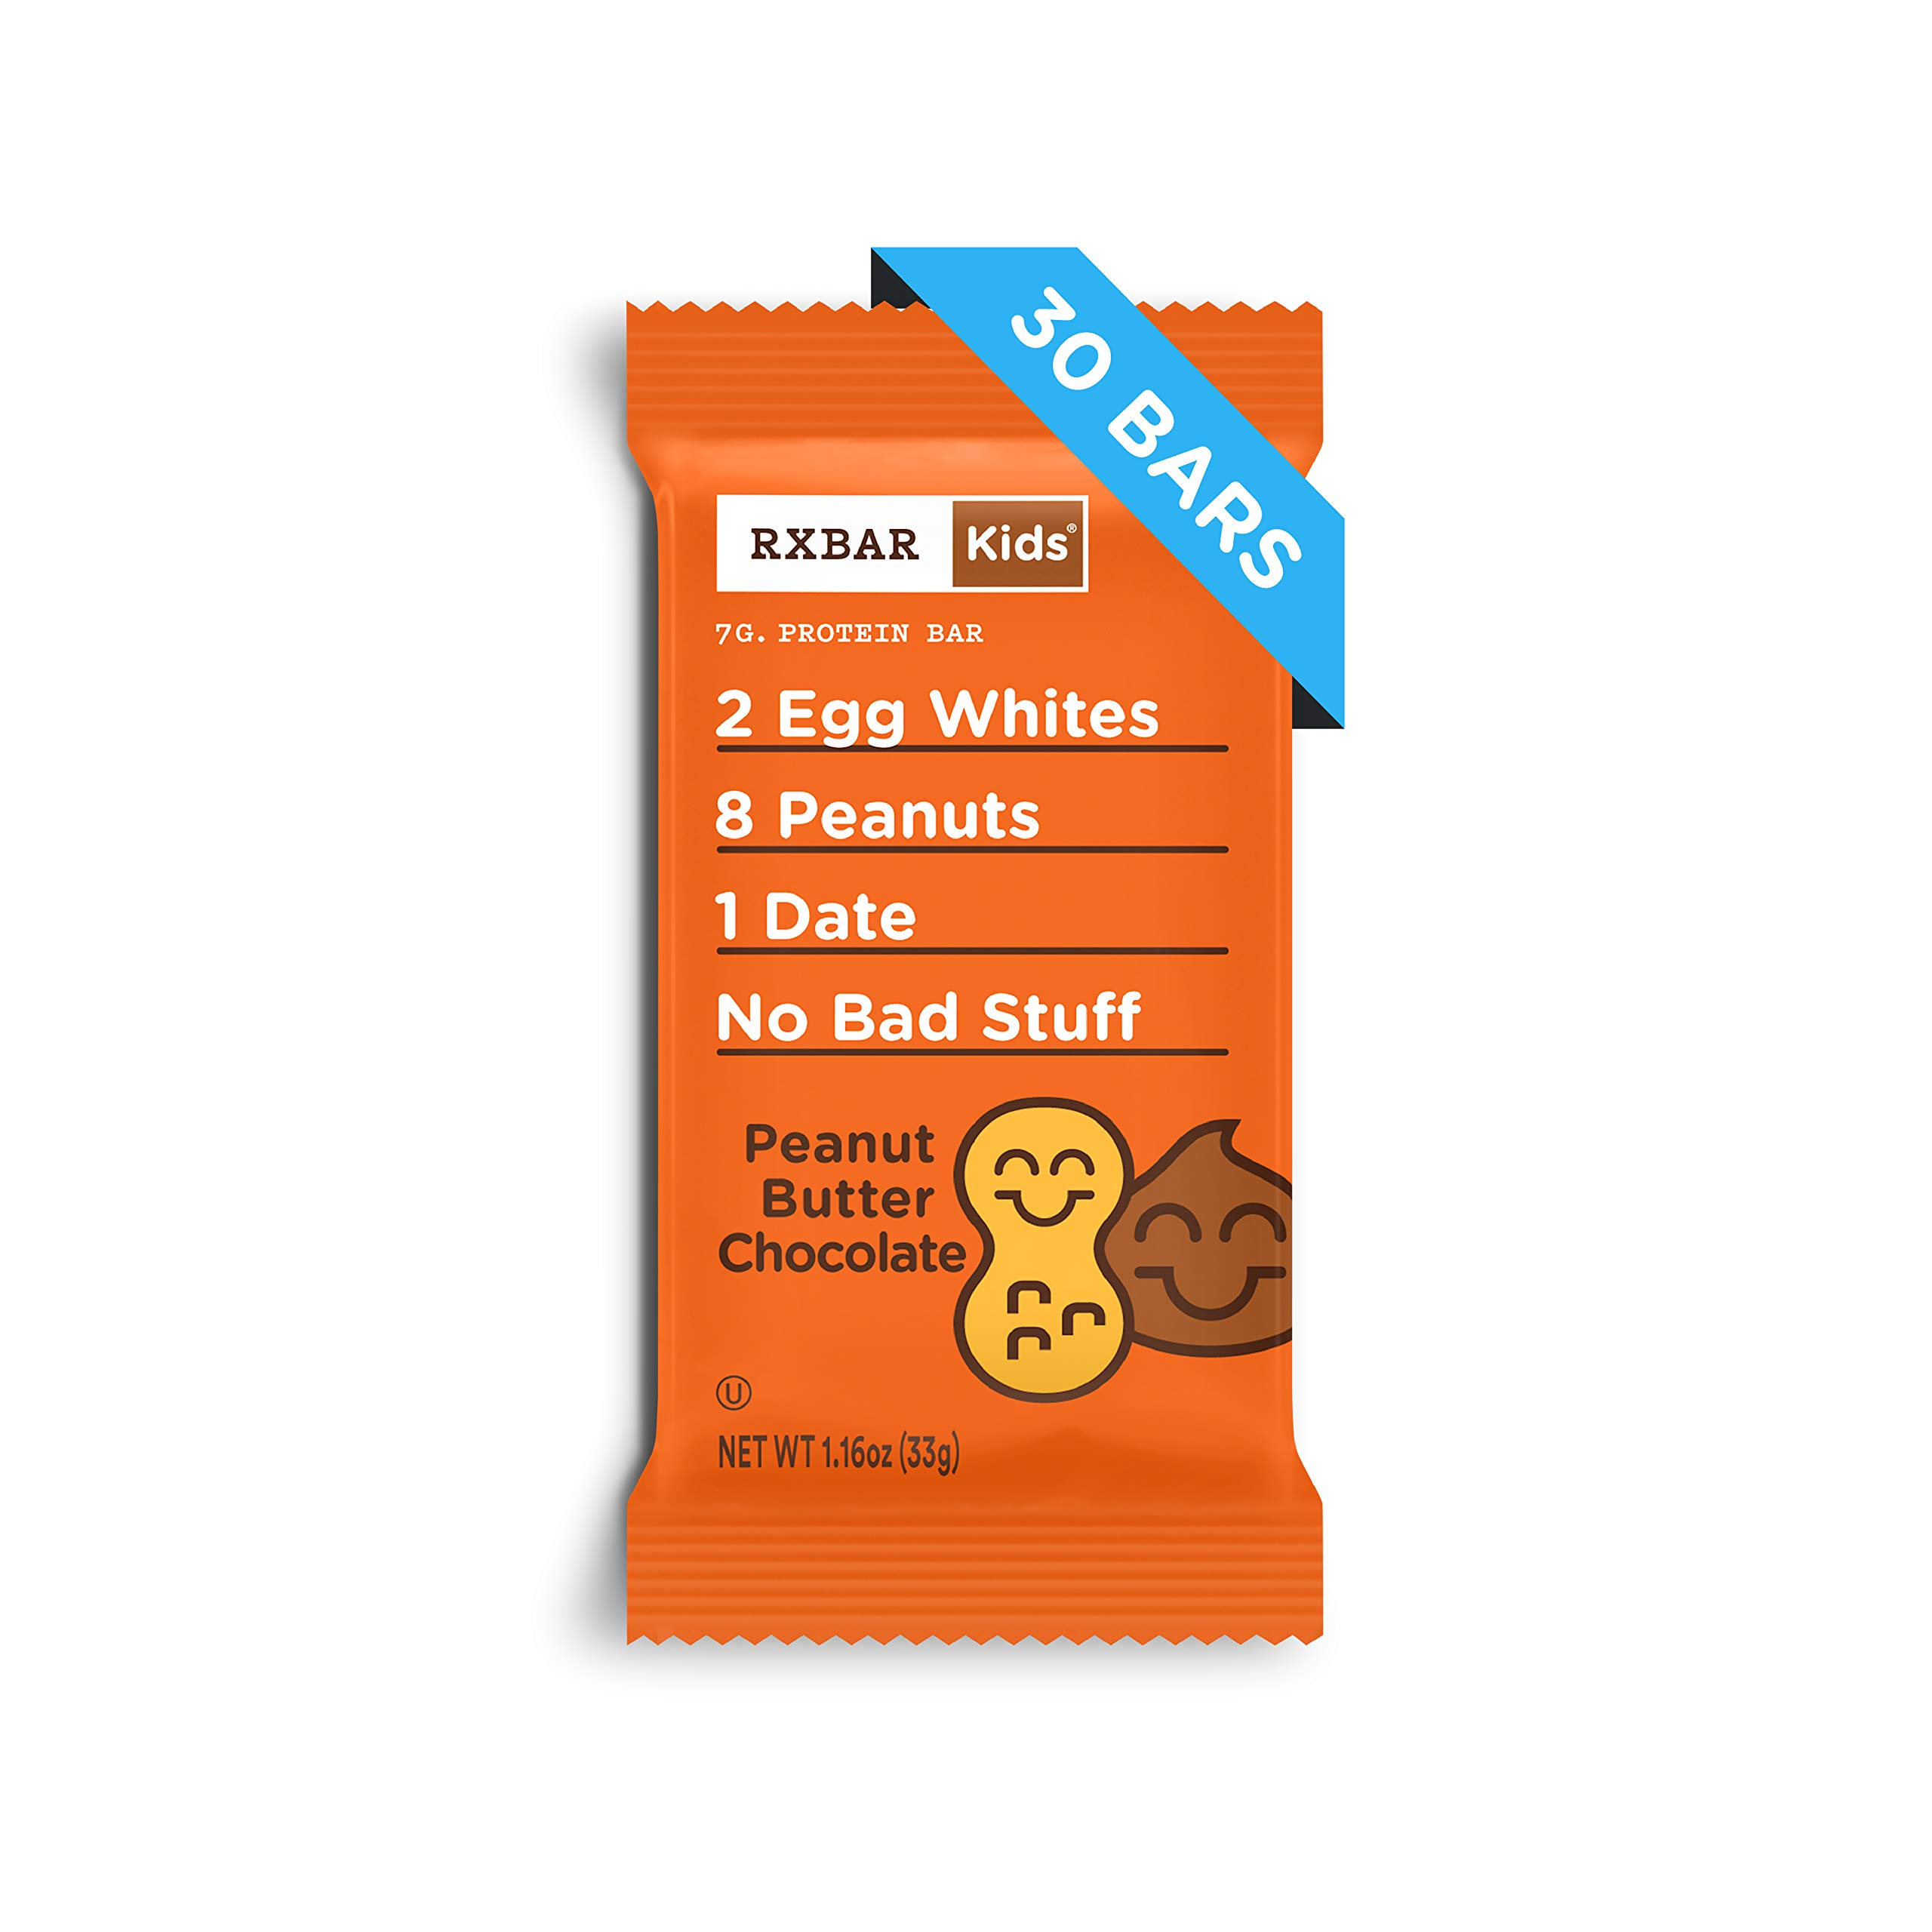 RXBAR Kids Real Food Protein Bar, Peanut Butter Chocolate, Gluten Free, 1.16oz Bars, 30 Count